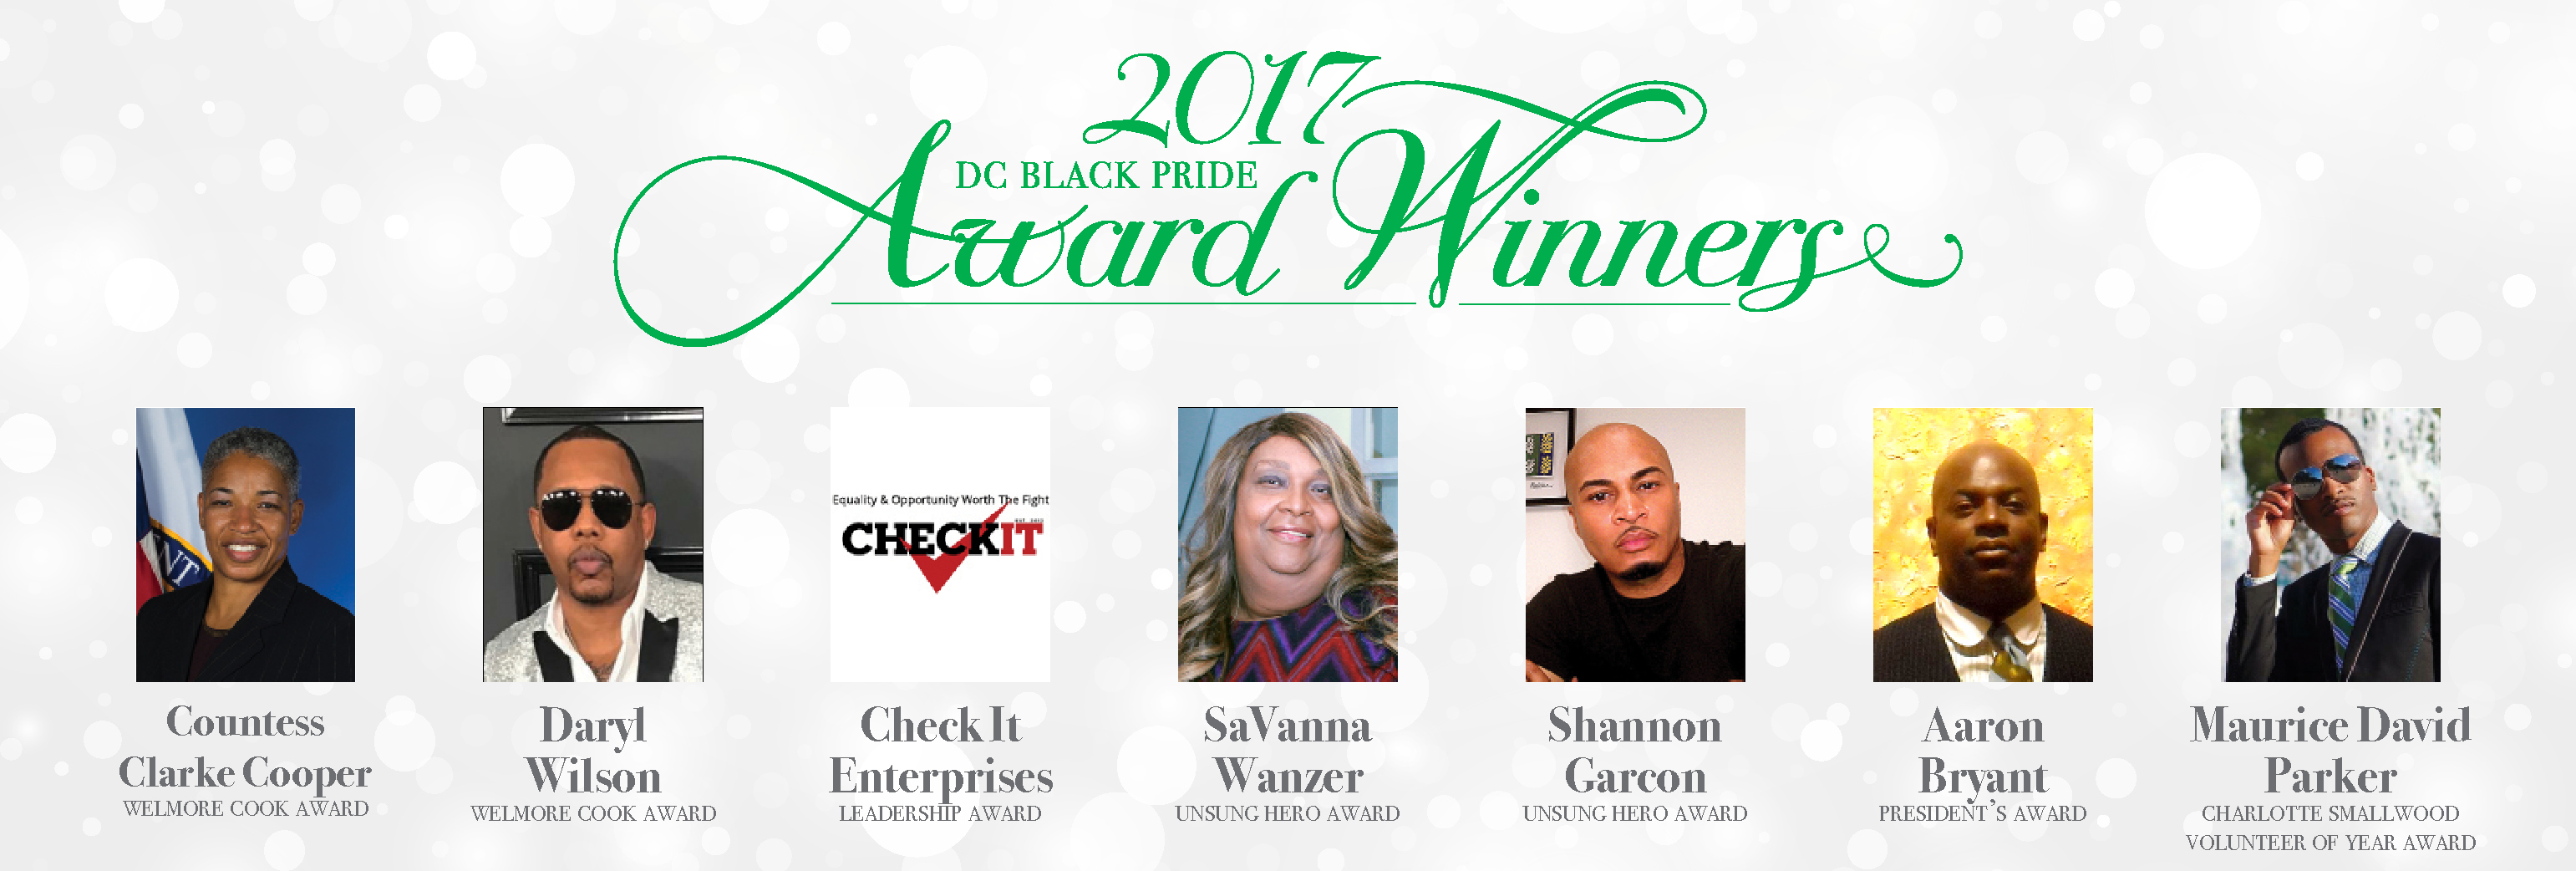 DC Black Pride Award Winners